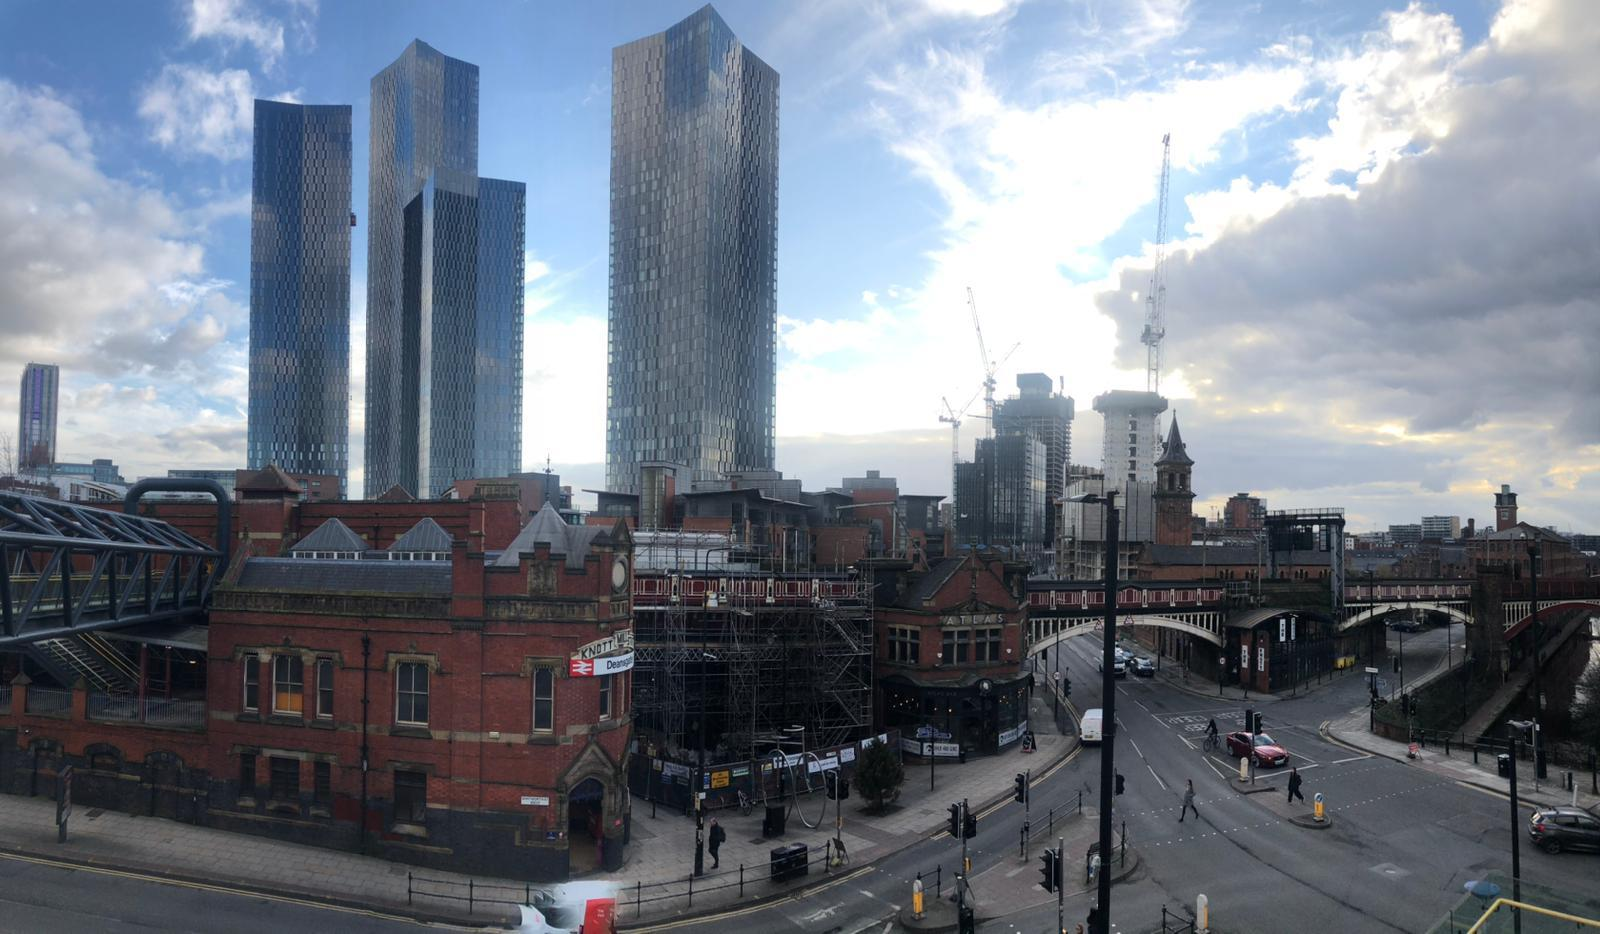 Deansgate Square South Tower, Manchester M15 4TW